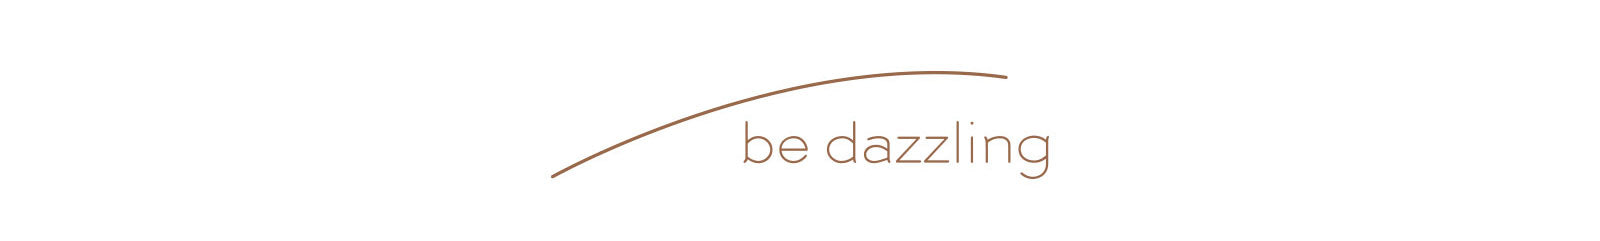 be dazzling